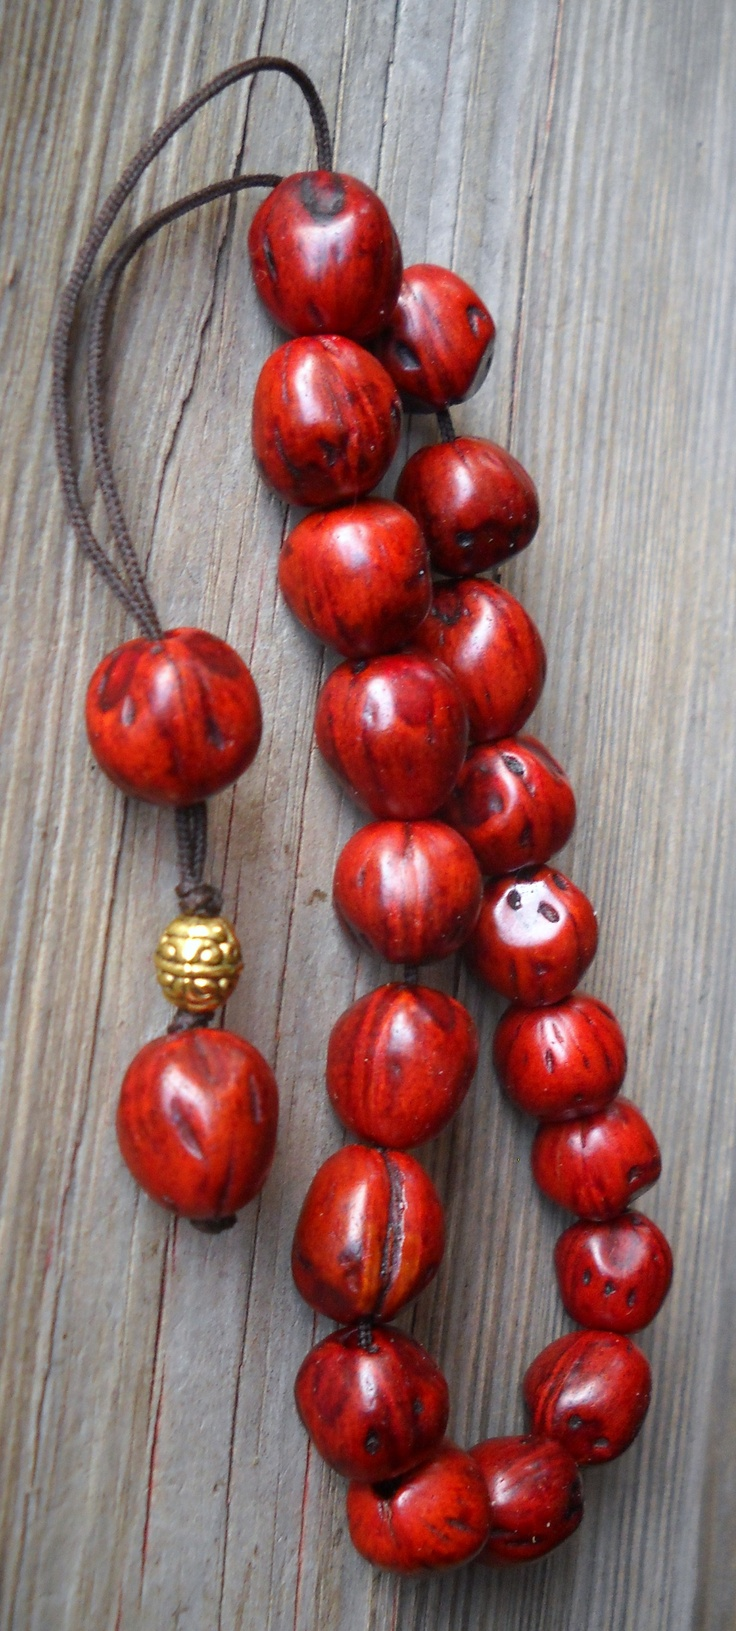 aromatic nutmeg fruit Worry beads,kompoloi